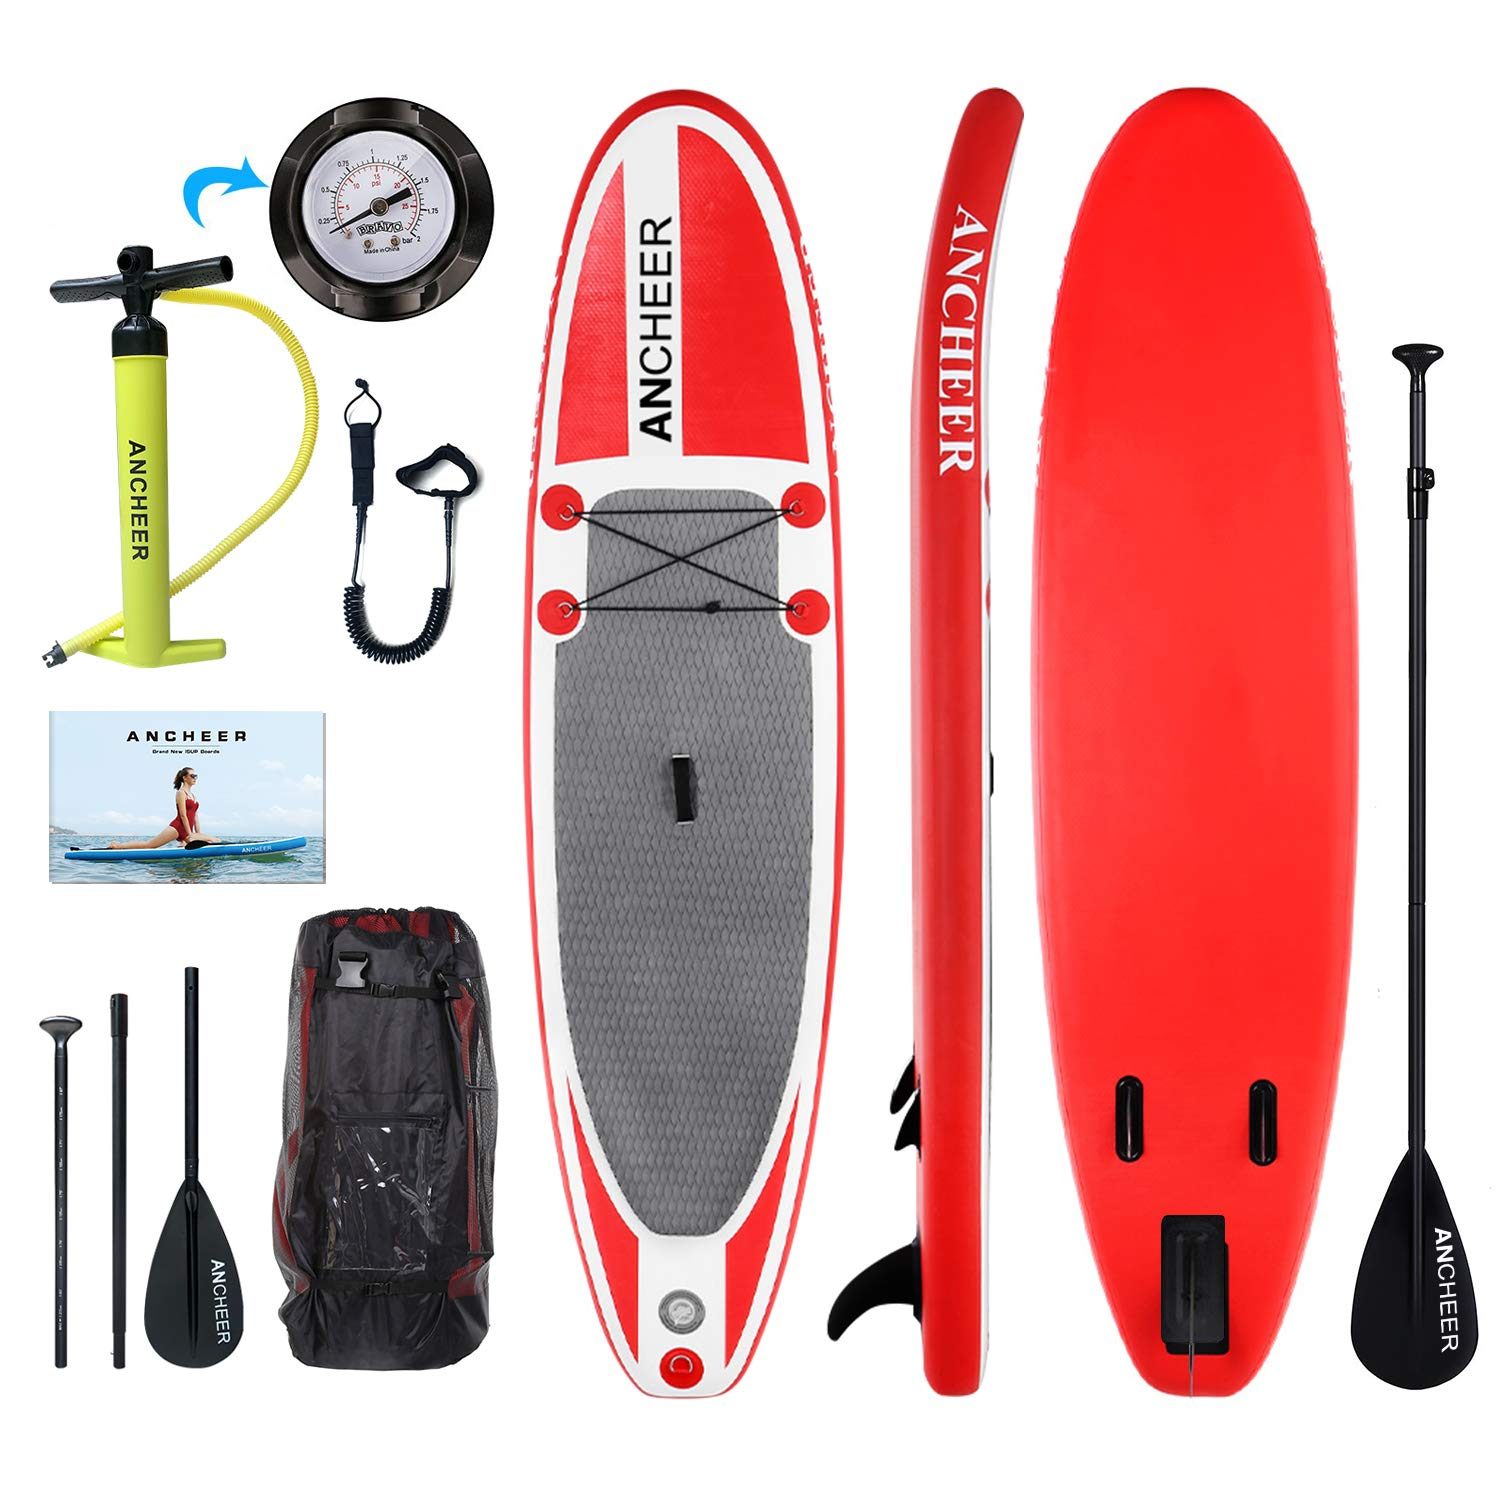 ANCHEER Inflatable Stand Up Paddle Board 10, Non-Slip Deck(6 Inches Thick), iSUP Boards Package w/Adjustable Paddle, Leash, Hand Pump and Backpack, ...